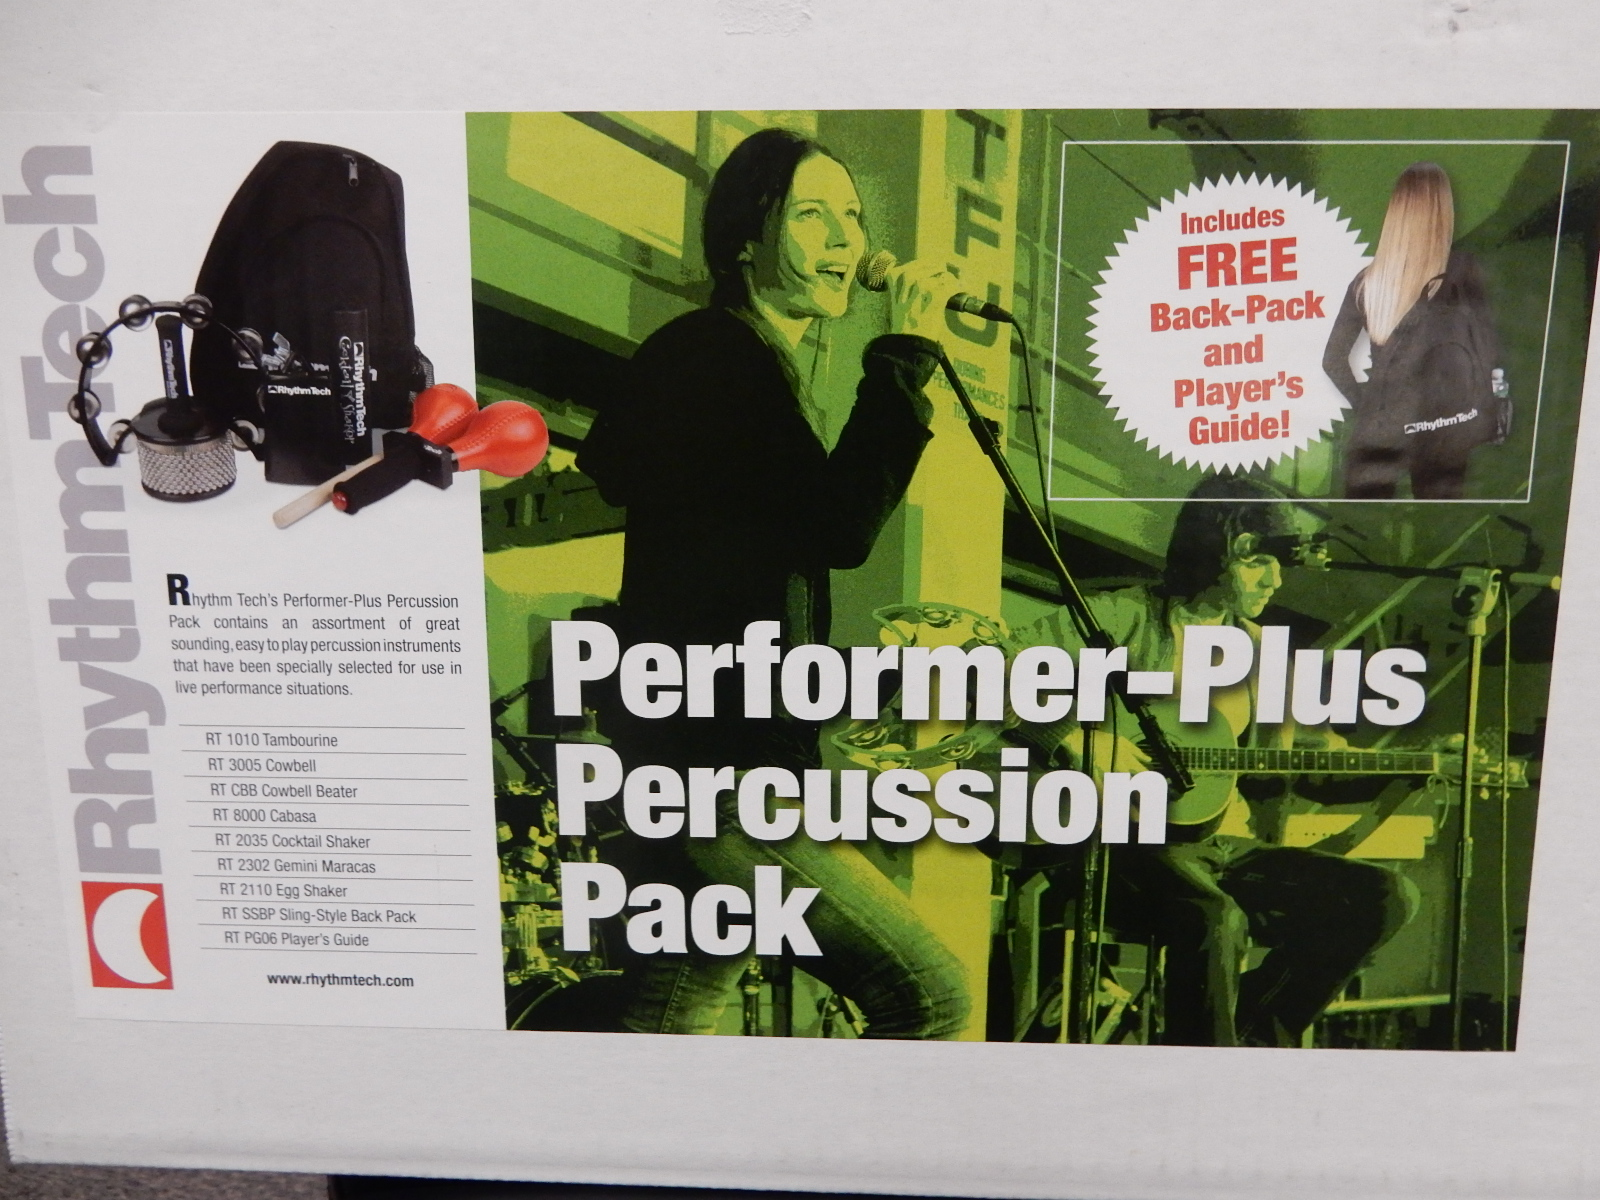 Rhythm Tech - Performer-Plus Percussion Pack